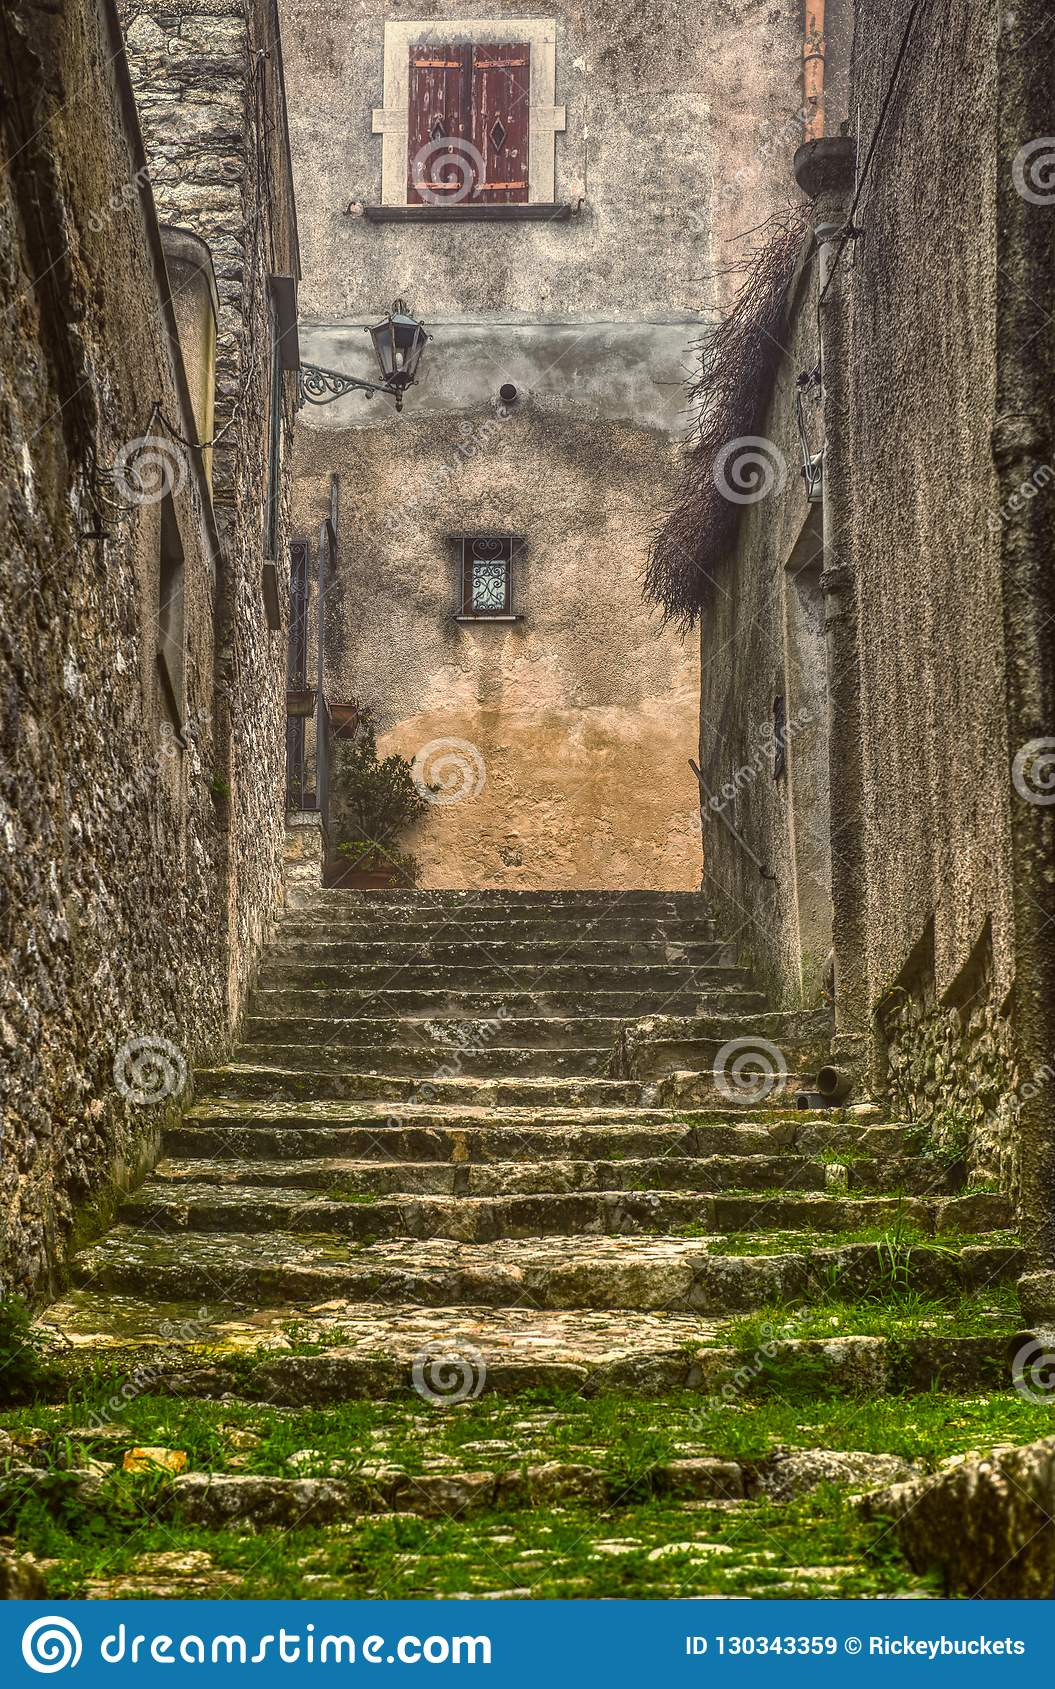 Beyond The Clearing Mist Lay The Medieval Steps of Erice